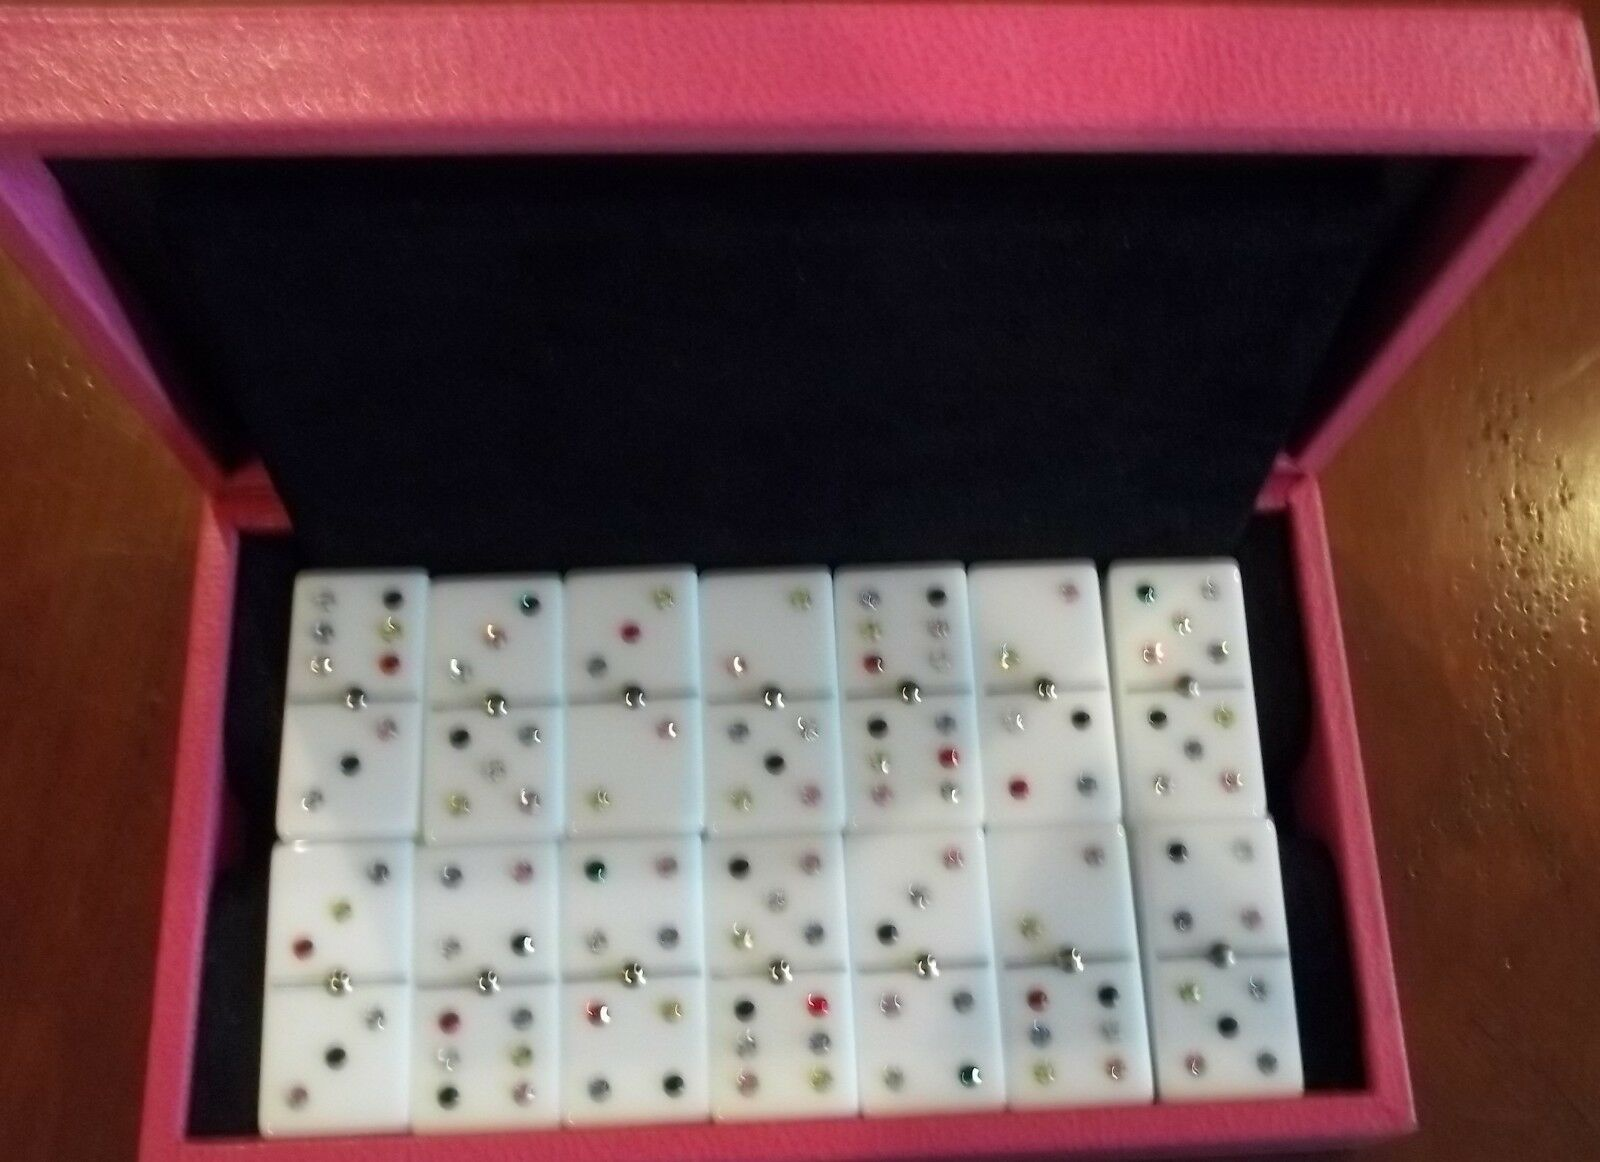 Renzo Romagnoli Dominoes Set Set Set Luxury Pink Leather Cased White Dominoes cbc562